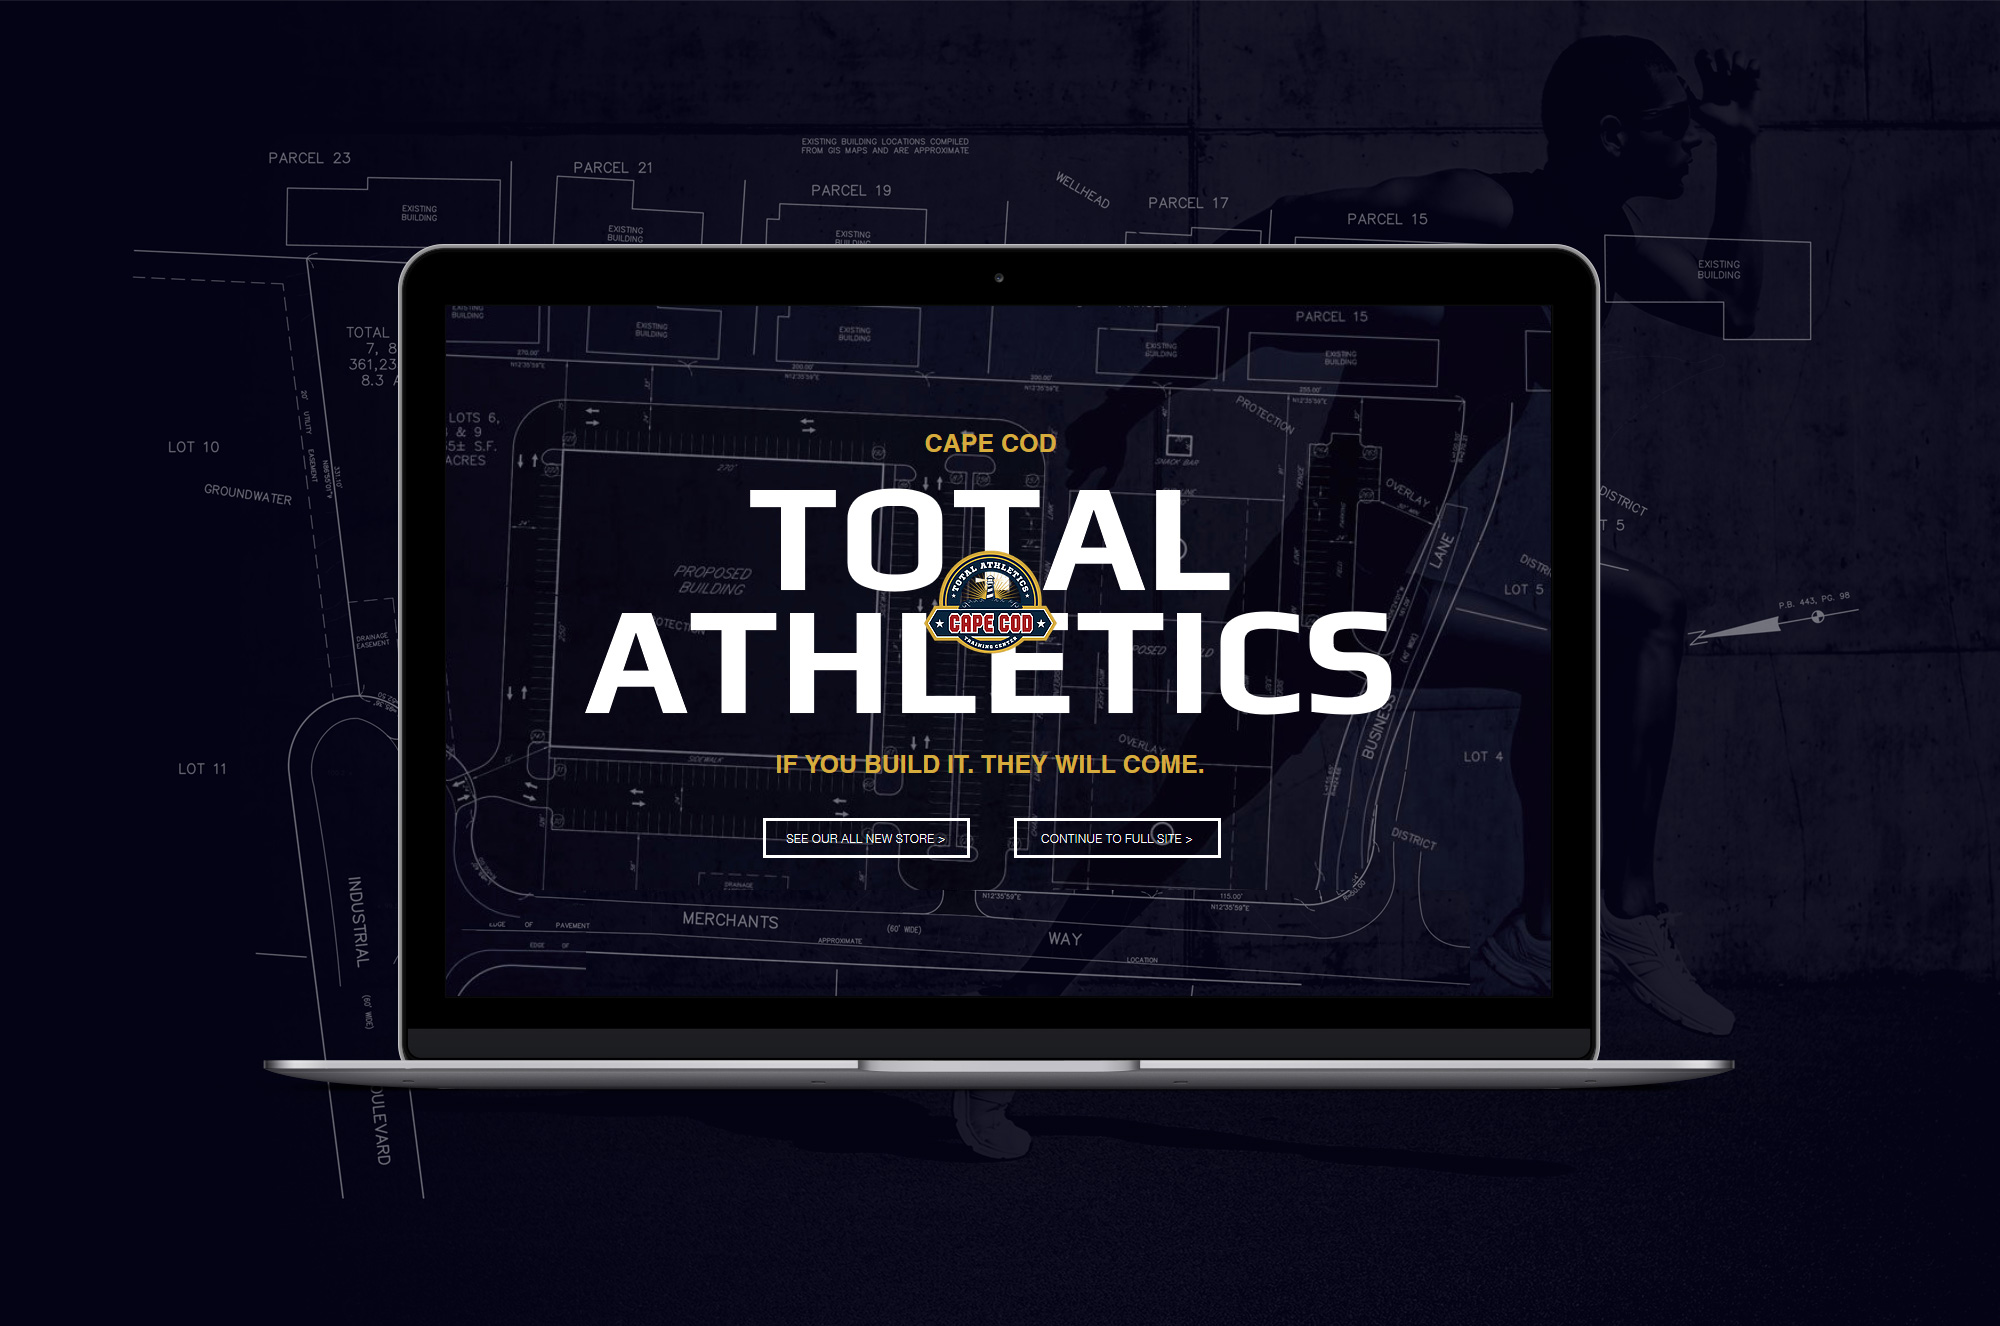 "TOTAL ATHLETICS<a href=""/total-athletics""><br>→</a>"